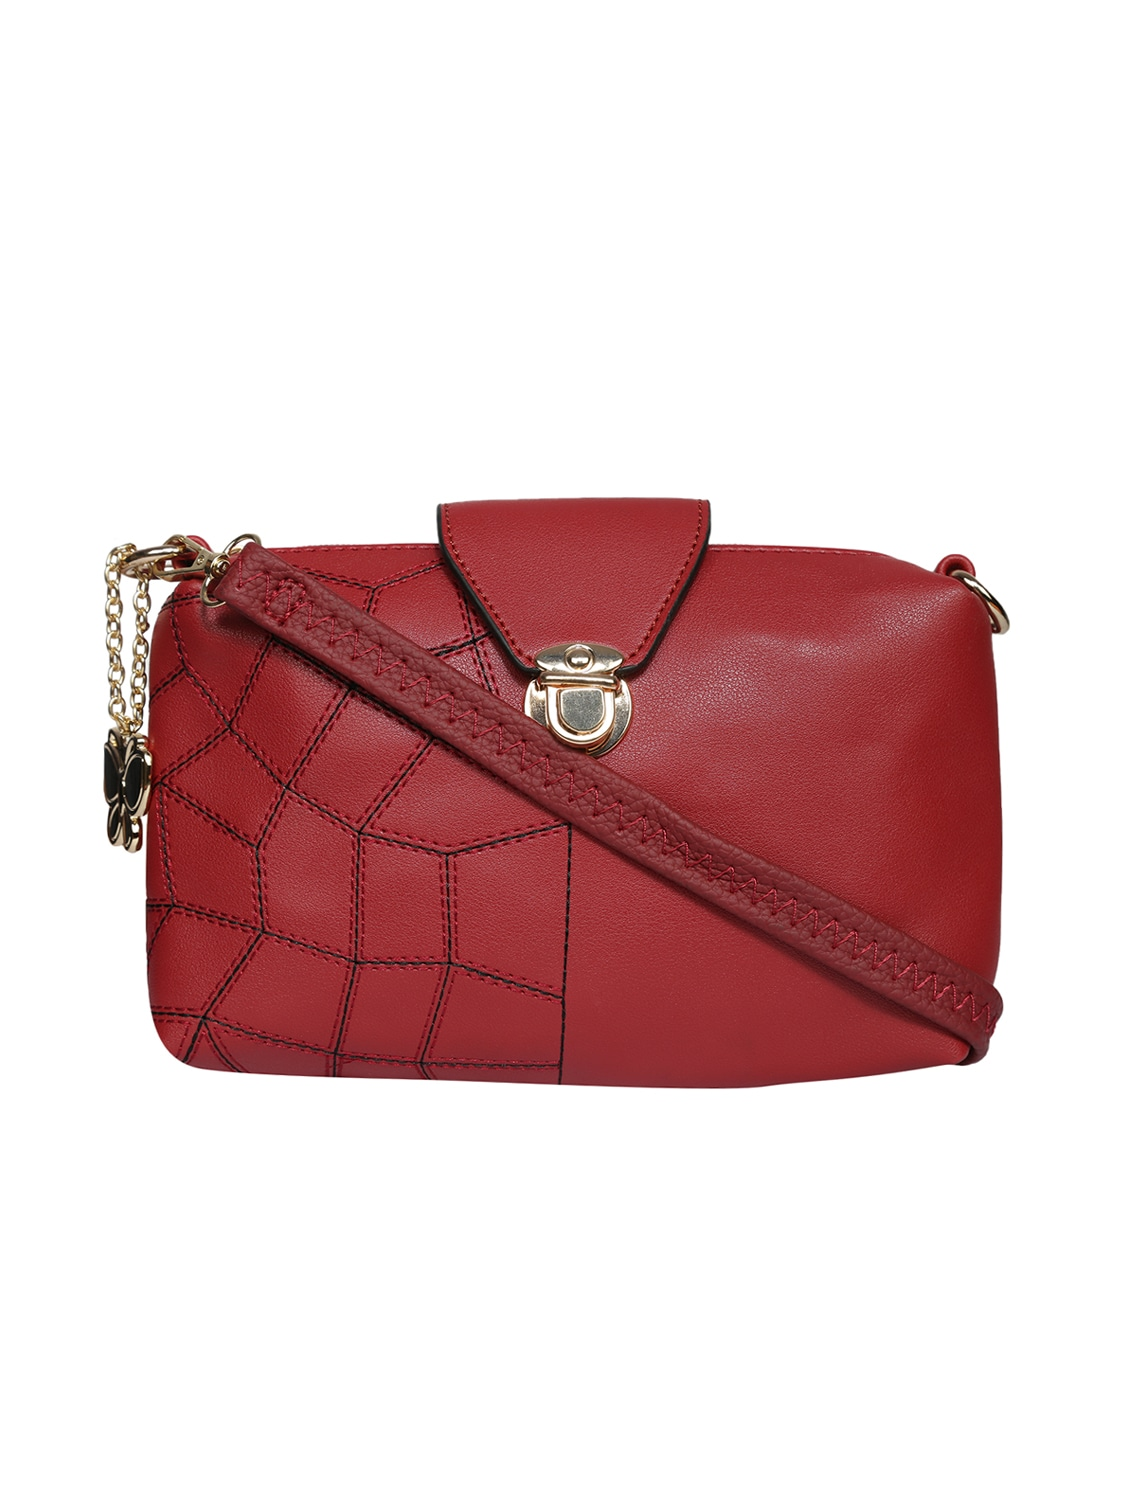 845fe47194a4 Buy Red Leatherette (pu) Regular Sling Bag by Butterflies - Online shopping  for Sling Bags in India